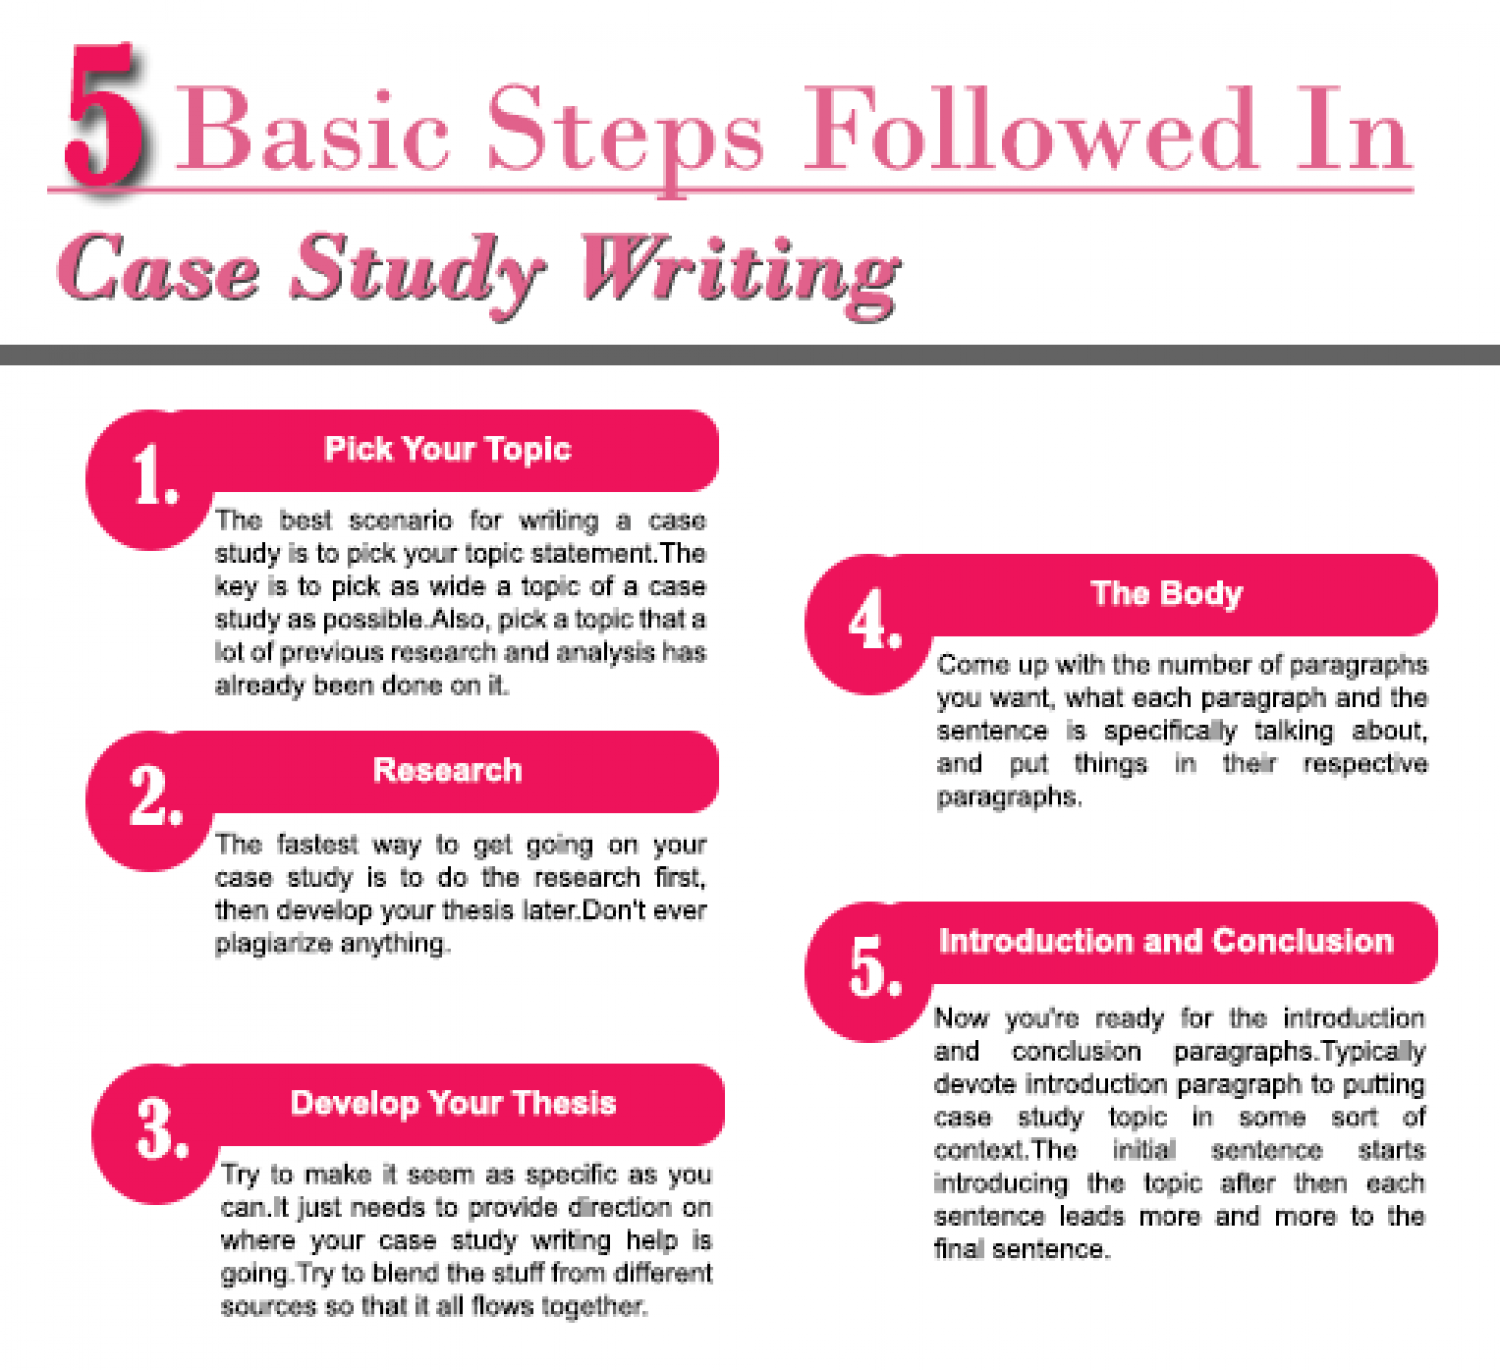 5 Basic Steps Followed In Case Study Writing Infographic